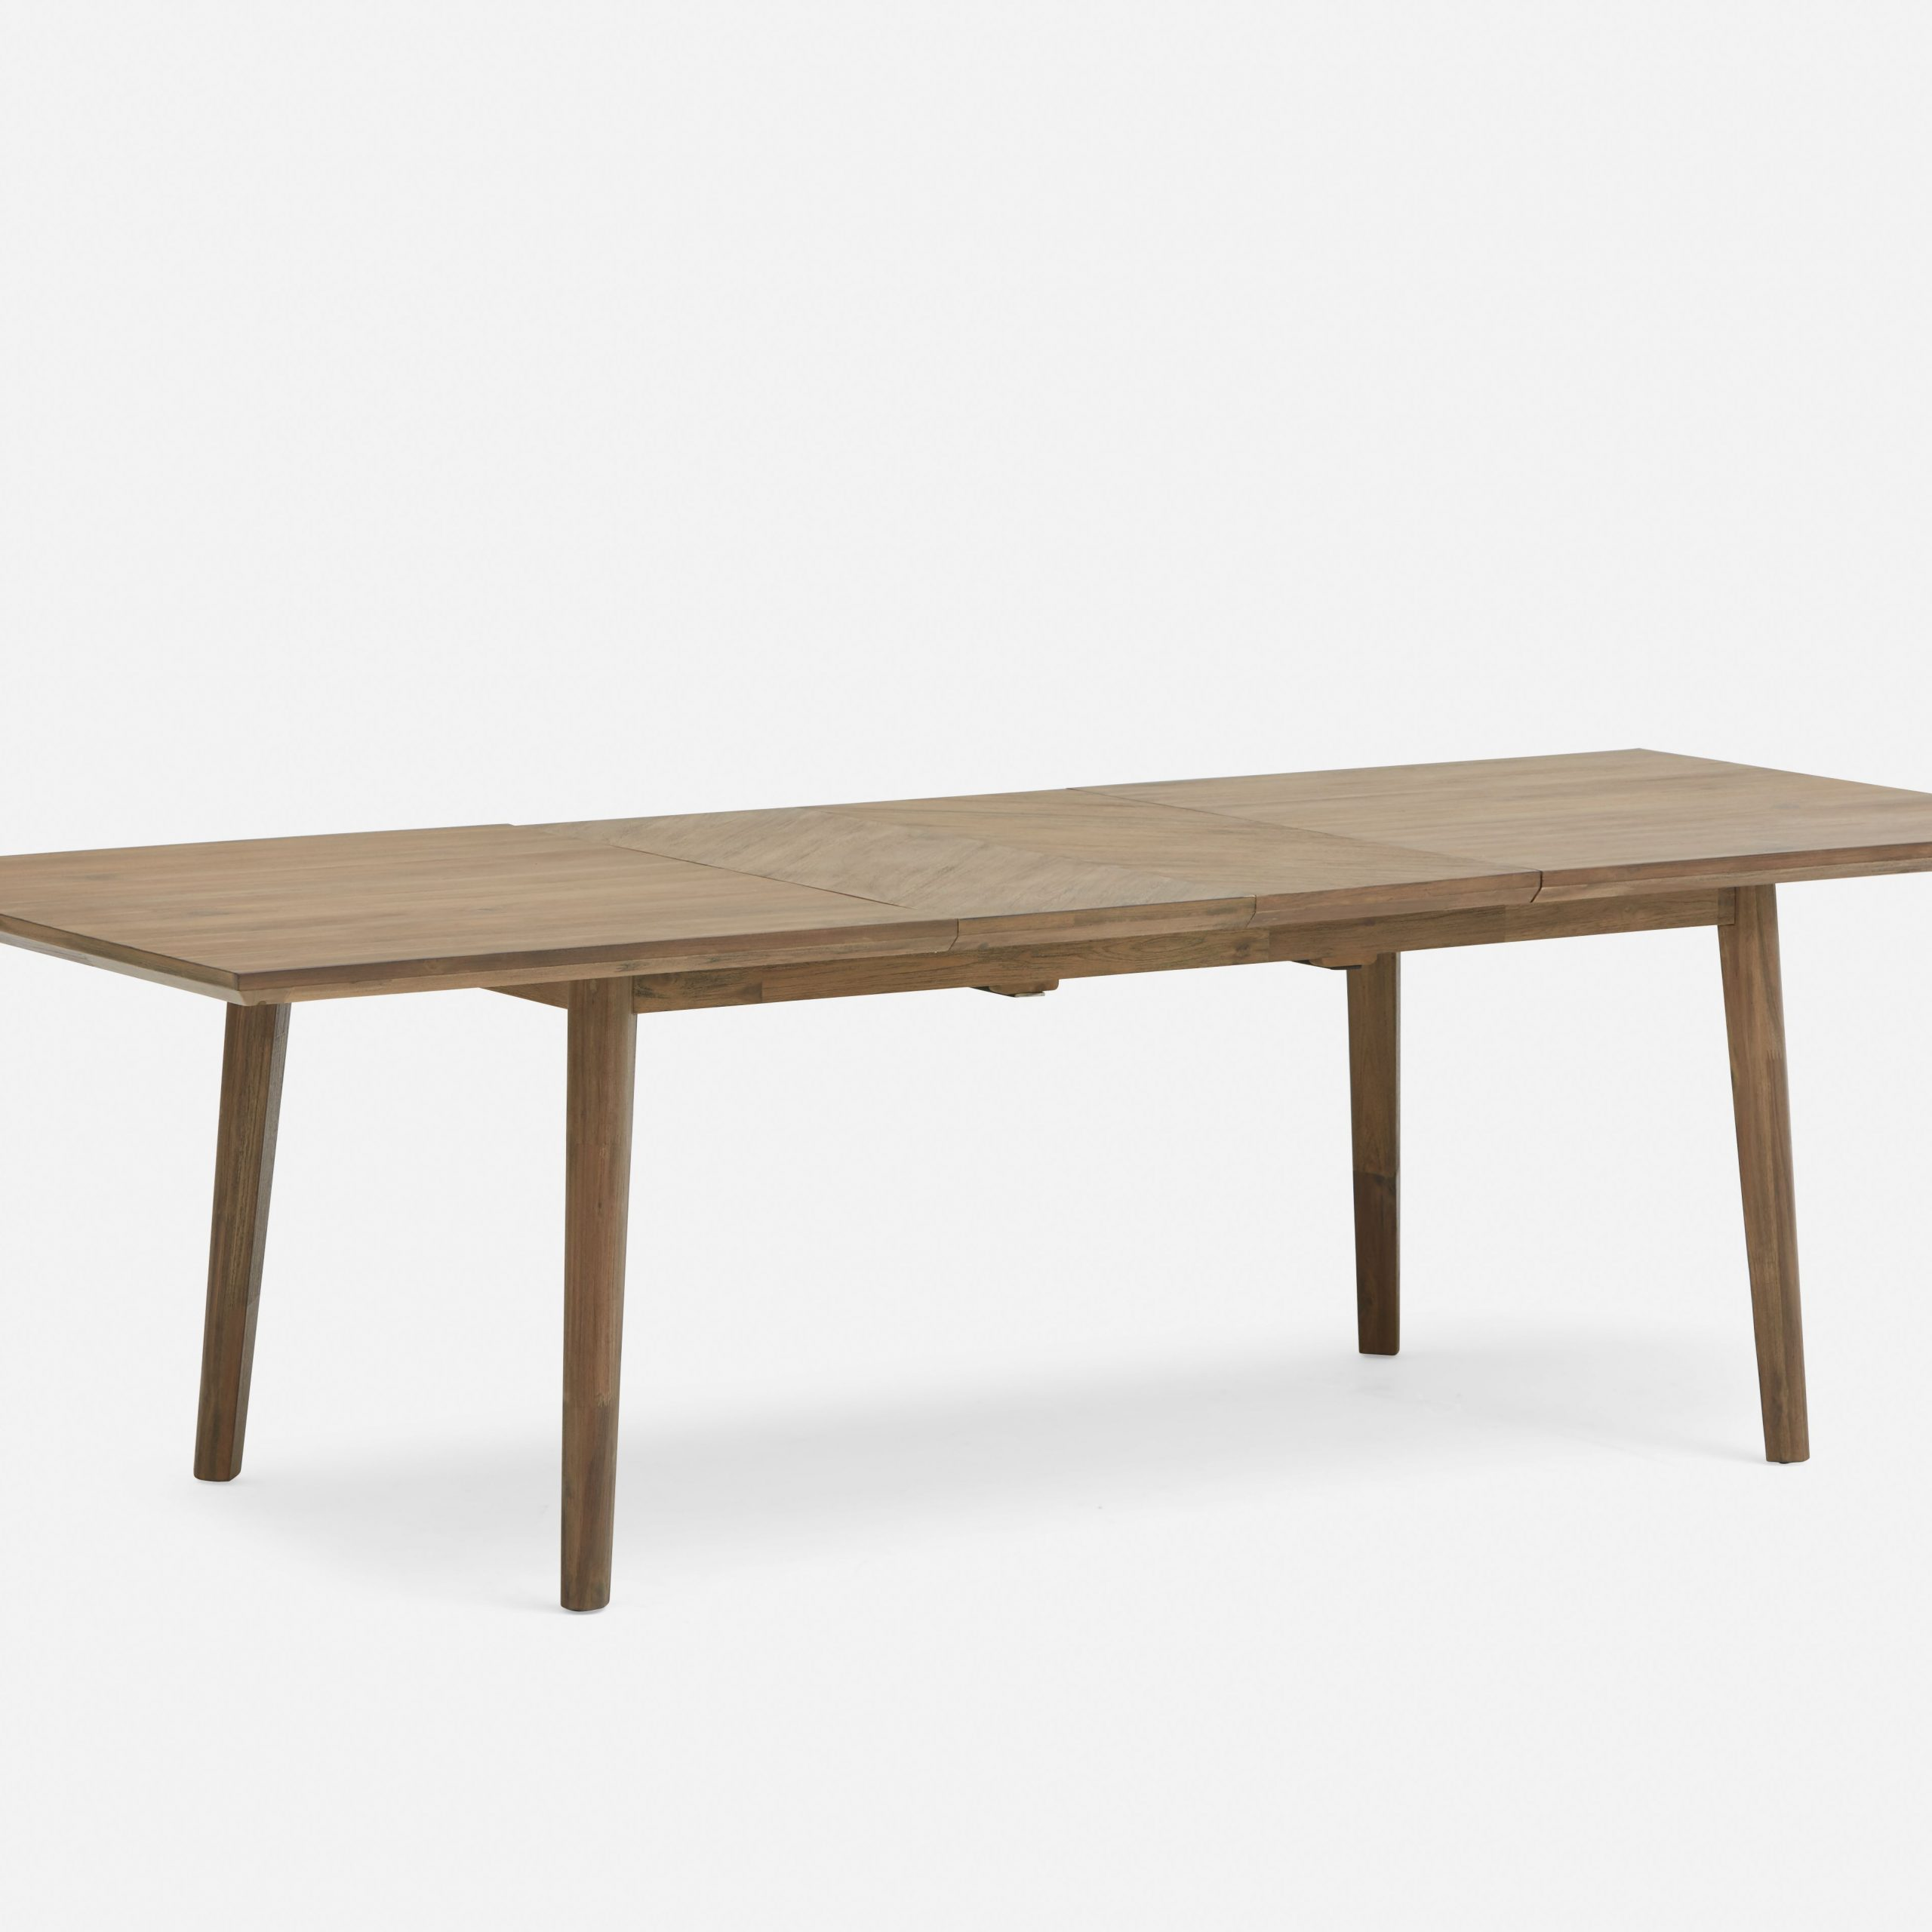 Dina Brown Extendable Acacia Wood Dining Table 180Cm To 260C For Best And Newest Shaw Dining Tables, English Brown (View 3 of 25)